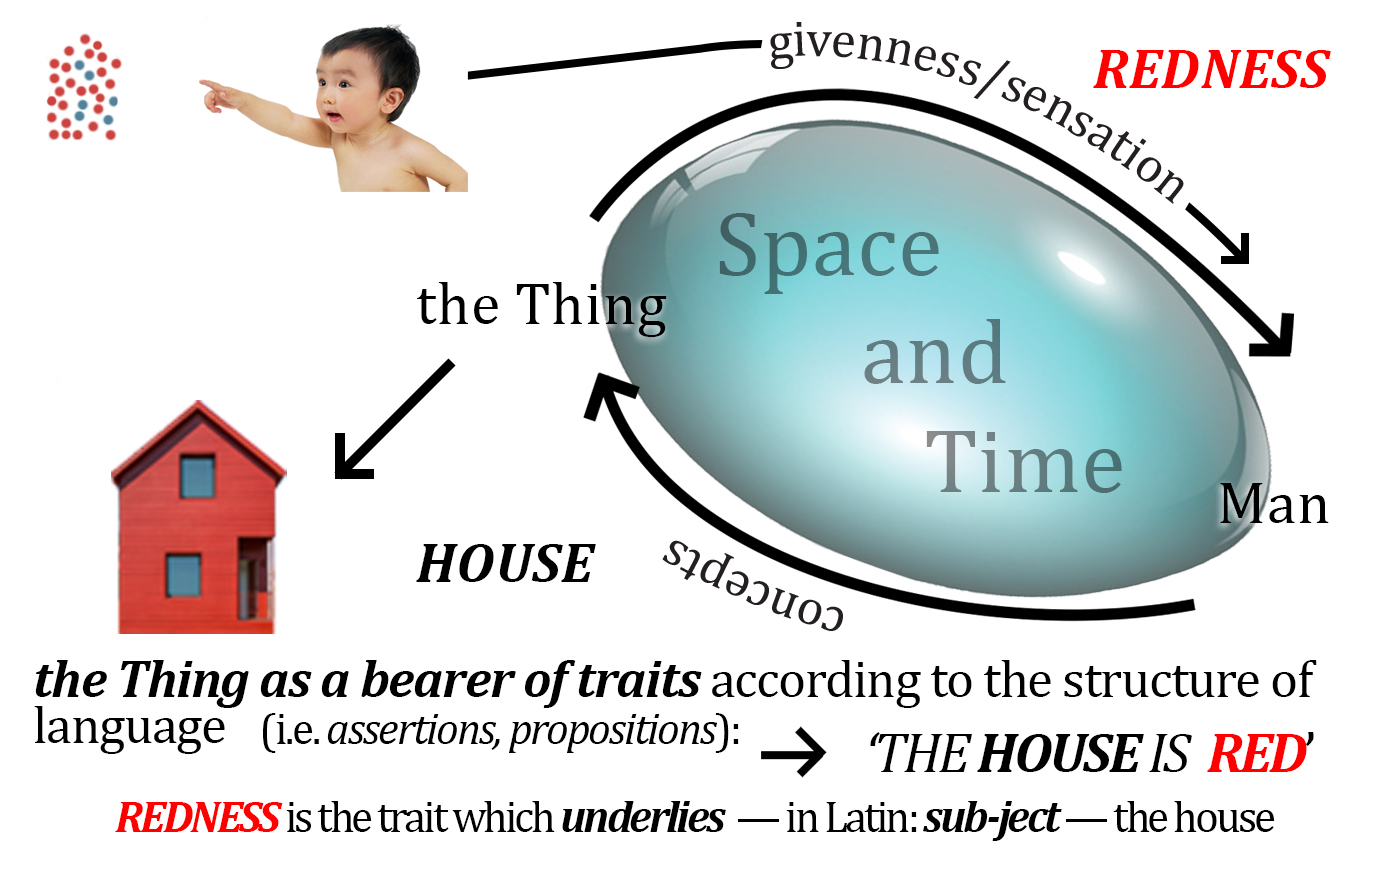 RSAP_012_04_The Thing as a Bearer of Traits_Update